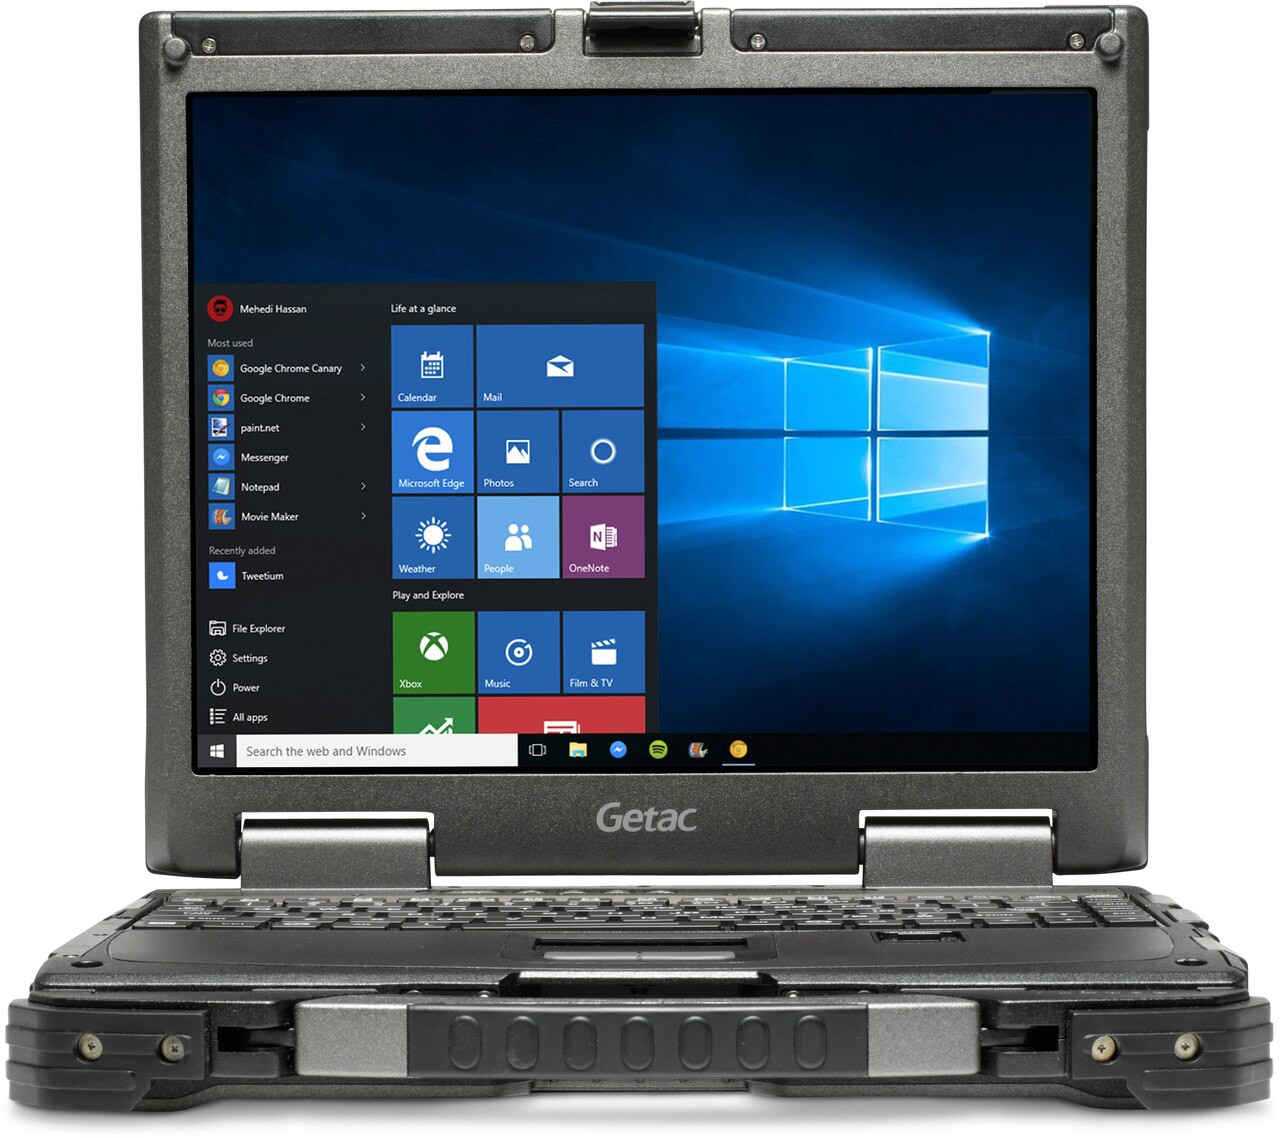 """Getac B300 G7 ,Intel Core i5-8250U Processor 1.6GHz,13.3"""" (Without Webcam),Win 10 Pro x64 with 8GB RAM ,256GB SSD,Sunlight Readable (LCD+Touchscreen),US KBD+US Power cord,Membrane Backlit KBD,Wifi+BT,HDMI,PCMCIA, Express Card 54, SD Card Reader, TPM"""